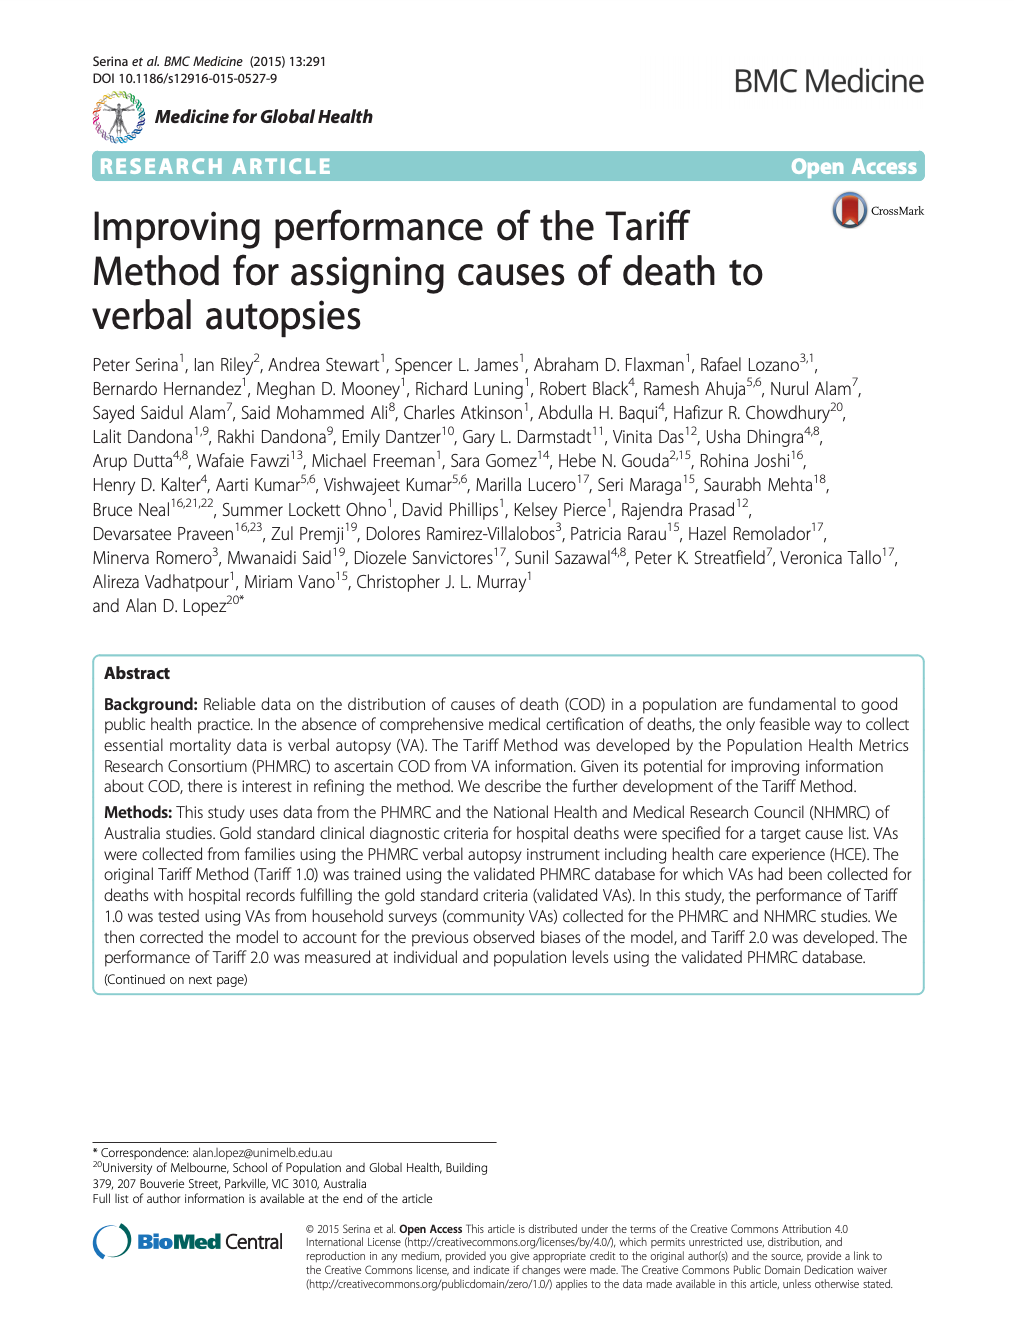 Improving performance of the Tariff Method for assigning causes of death to verbal autopsies thumbnail